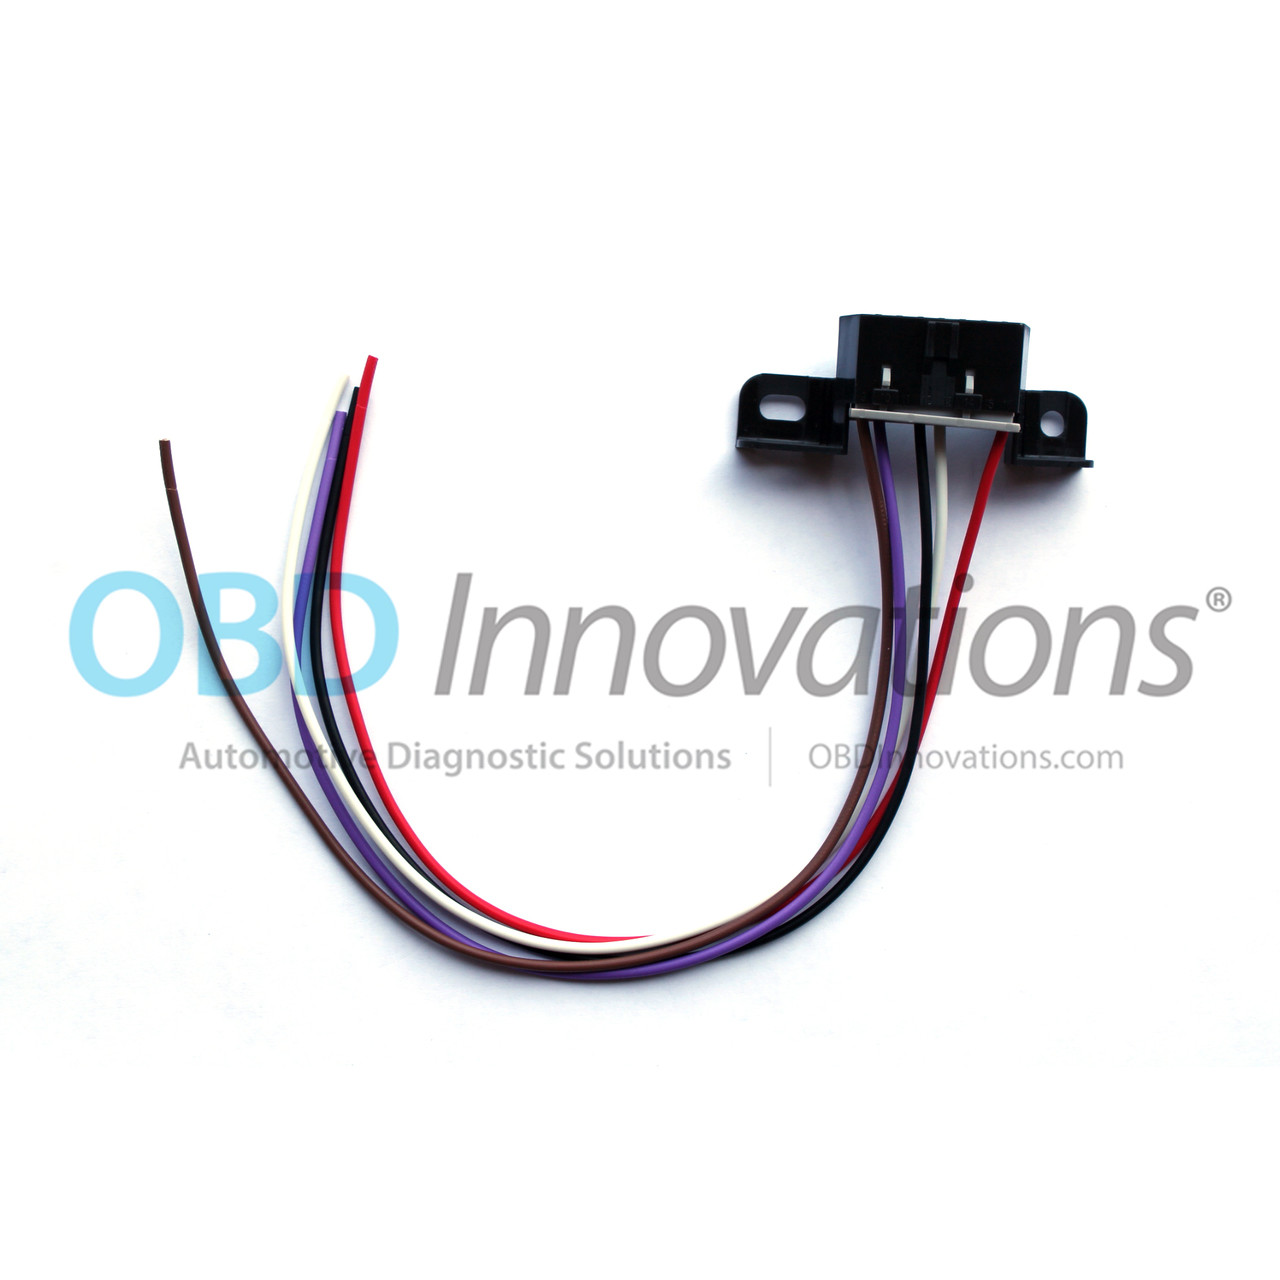 small resolution of obdii obd2 j1962 aldl wiring harness connector pigtail for gm ls1 rh obdinnovations com gm ls7 gm ls3